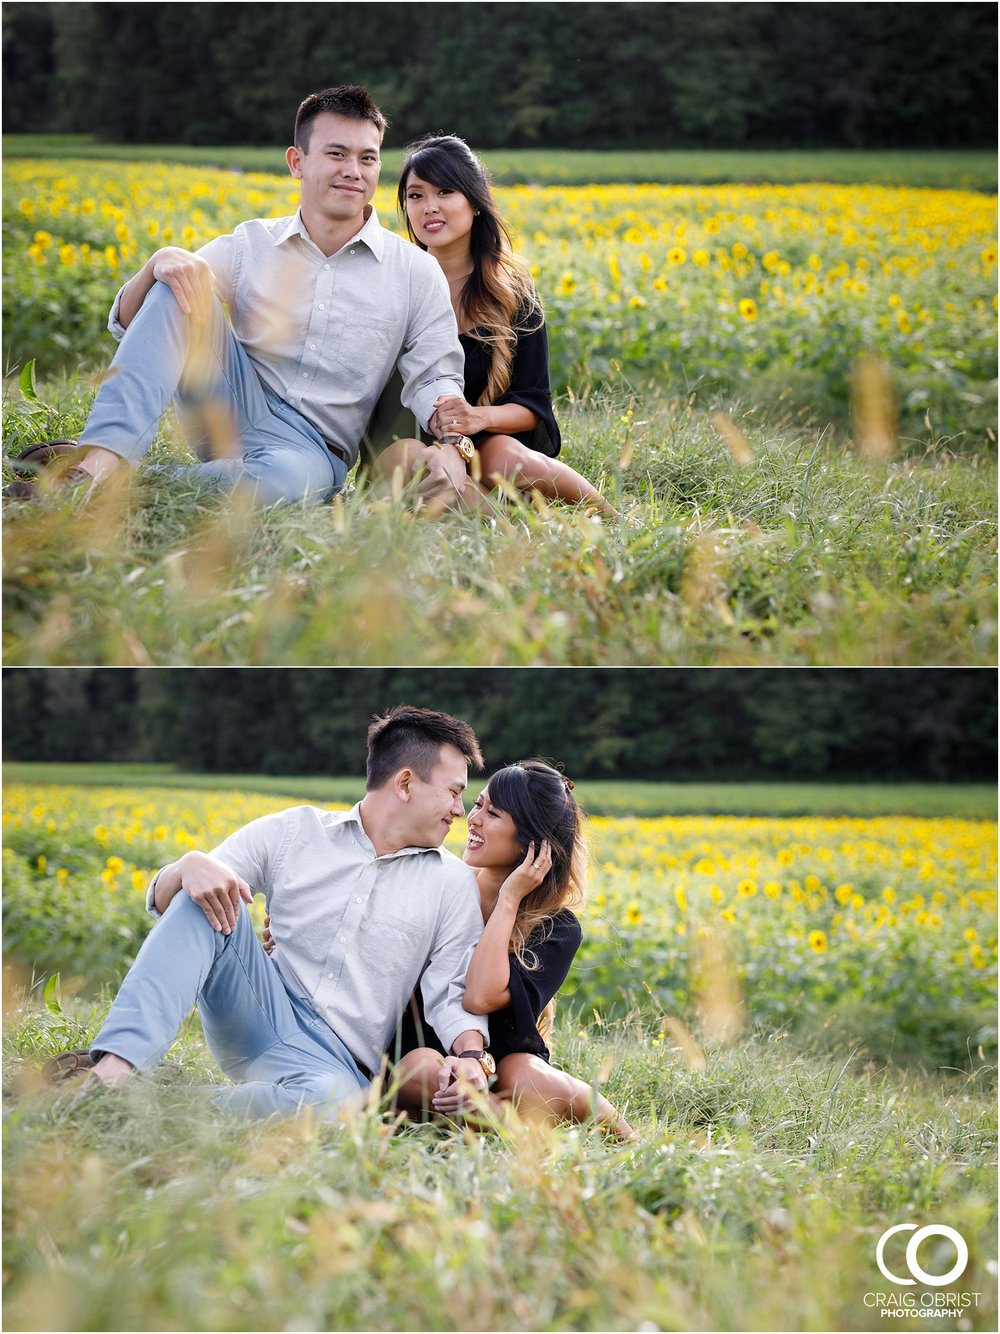 Sunflower field engagement portraits sunset mountains georgia_0016.jpg